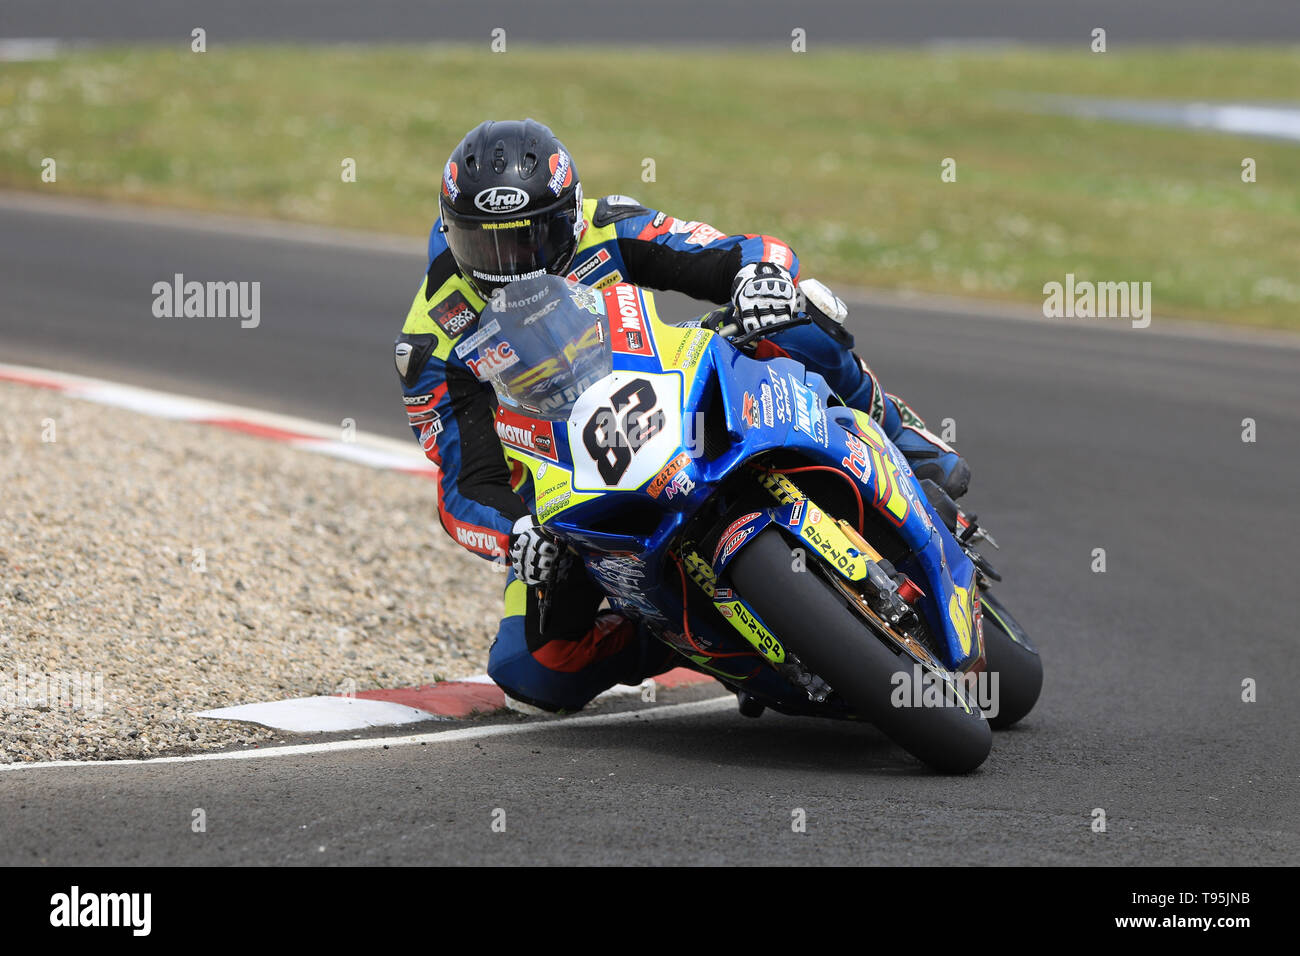 Portrush, Northern Ireland. 16th May, 2019. International North West 200 Motorcycle road racing, Thursday practice and evening racing; Derek Shiels on the Burrows Engineering/RK Racing Suzuki during the SuperBike qualifying session Credit: Action Plus Sports/Alamy Live News - Stock Image